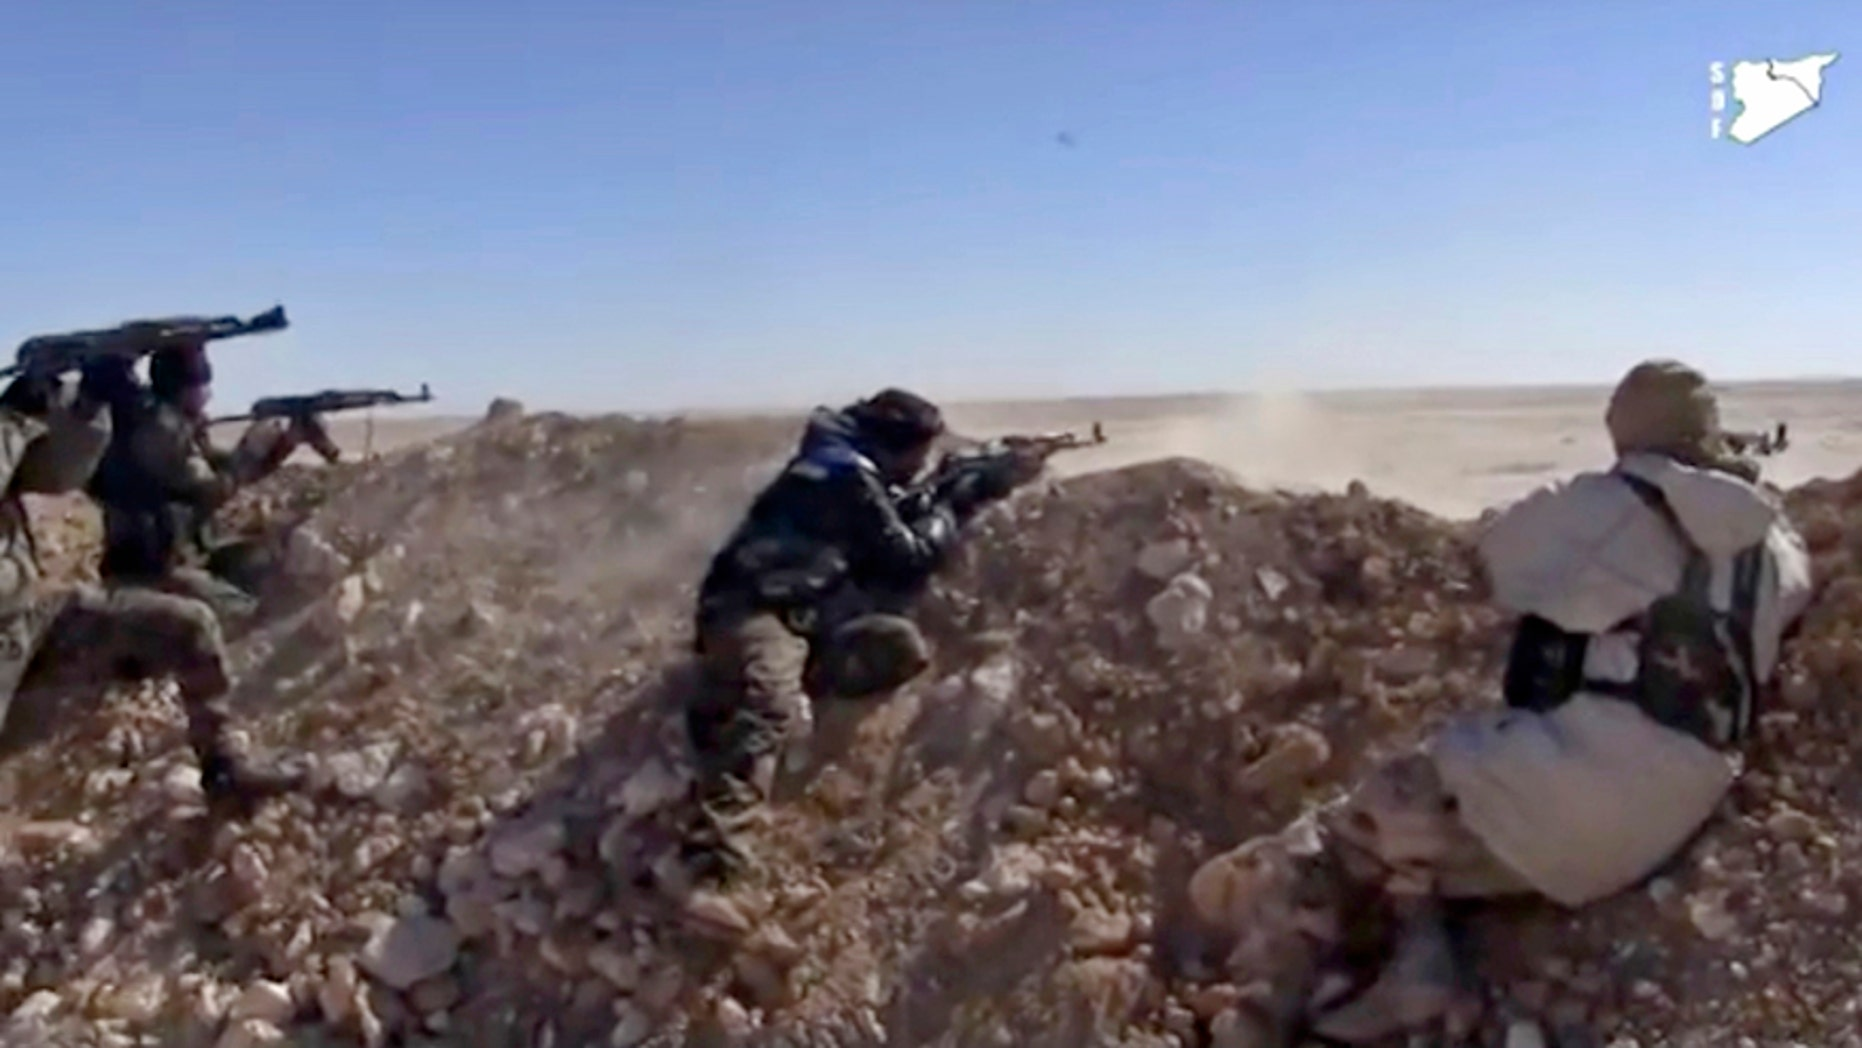 FILE - This frame grab from a  March 6, 2017 video provided by the Syria Democratic Forces (SDF), shows fighters from the SDF opening fire on a position of the Islamic State group in the countryside east of Raqqa, Syria. As the American –backed SDF fighters bear down on Raqqa, the militants have trapped the city's estimated 300,000 residents to use as human shields, ringing the city with land mines to prevent escape. (Syria Democratic Forces, via AP, File)